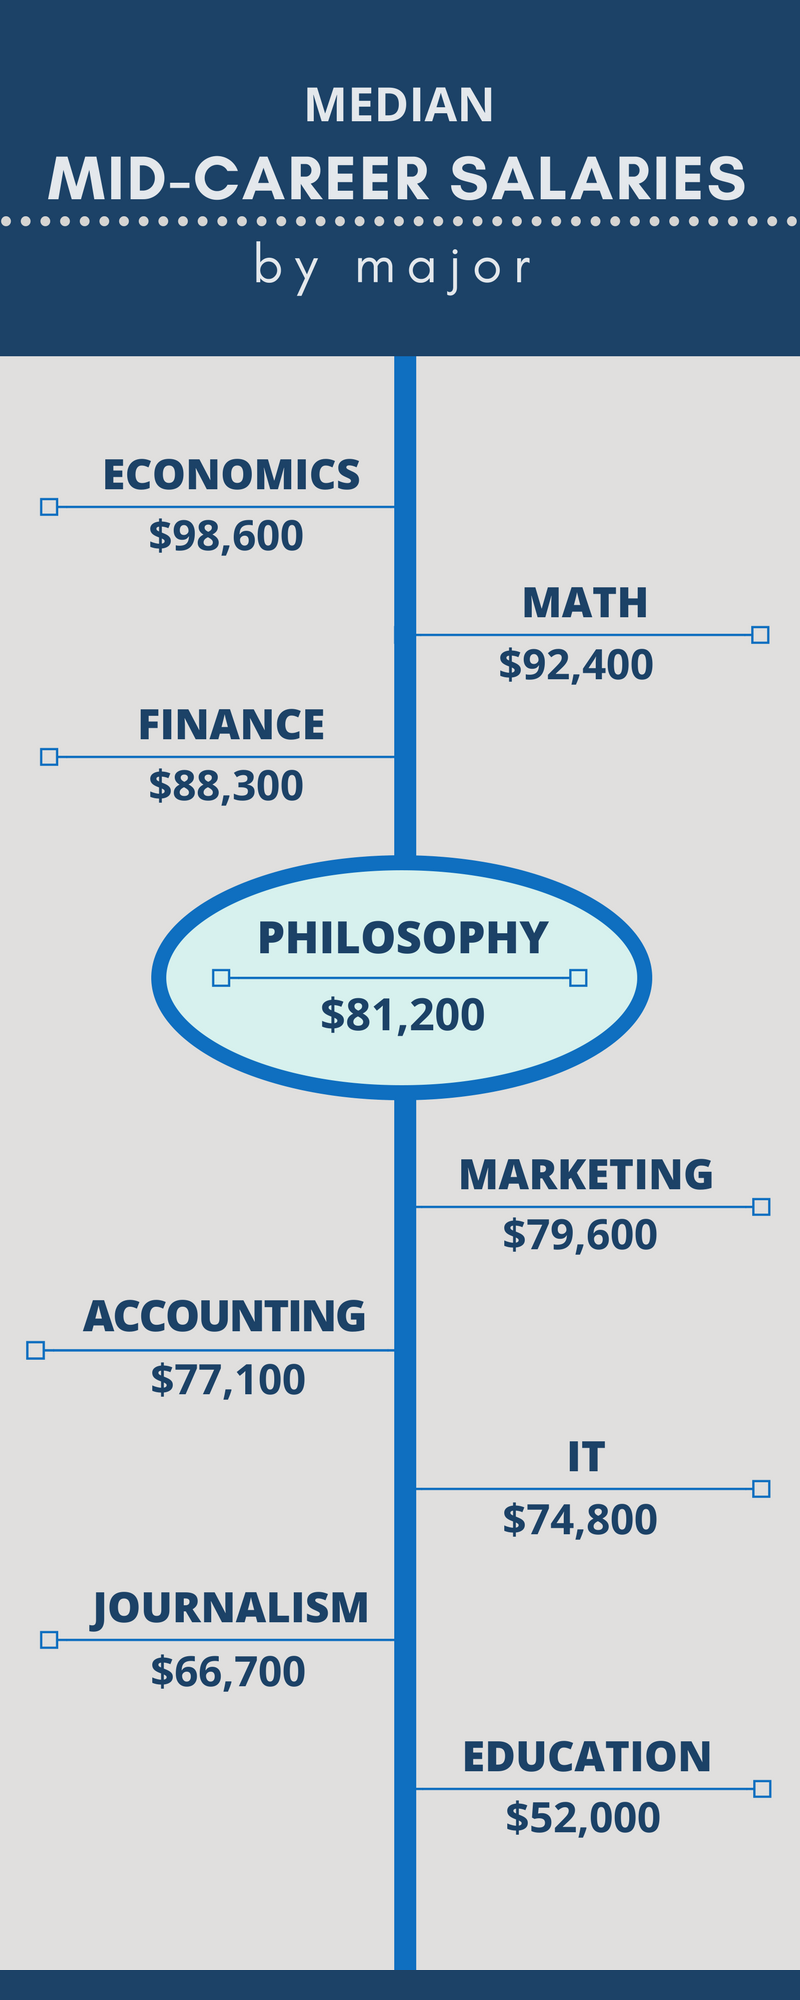 Median Mid-career Salary for Philosophy